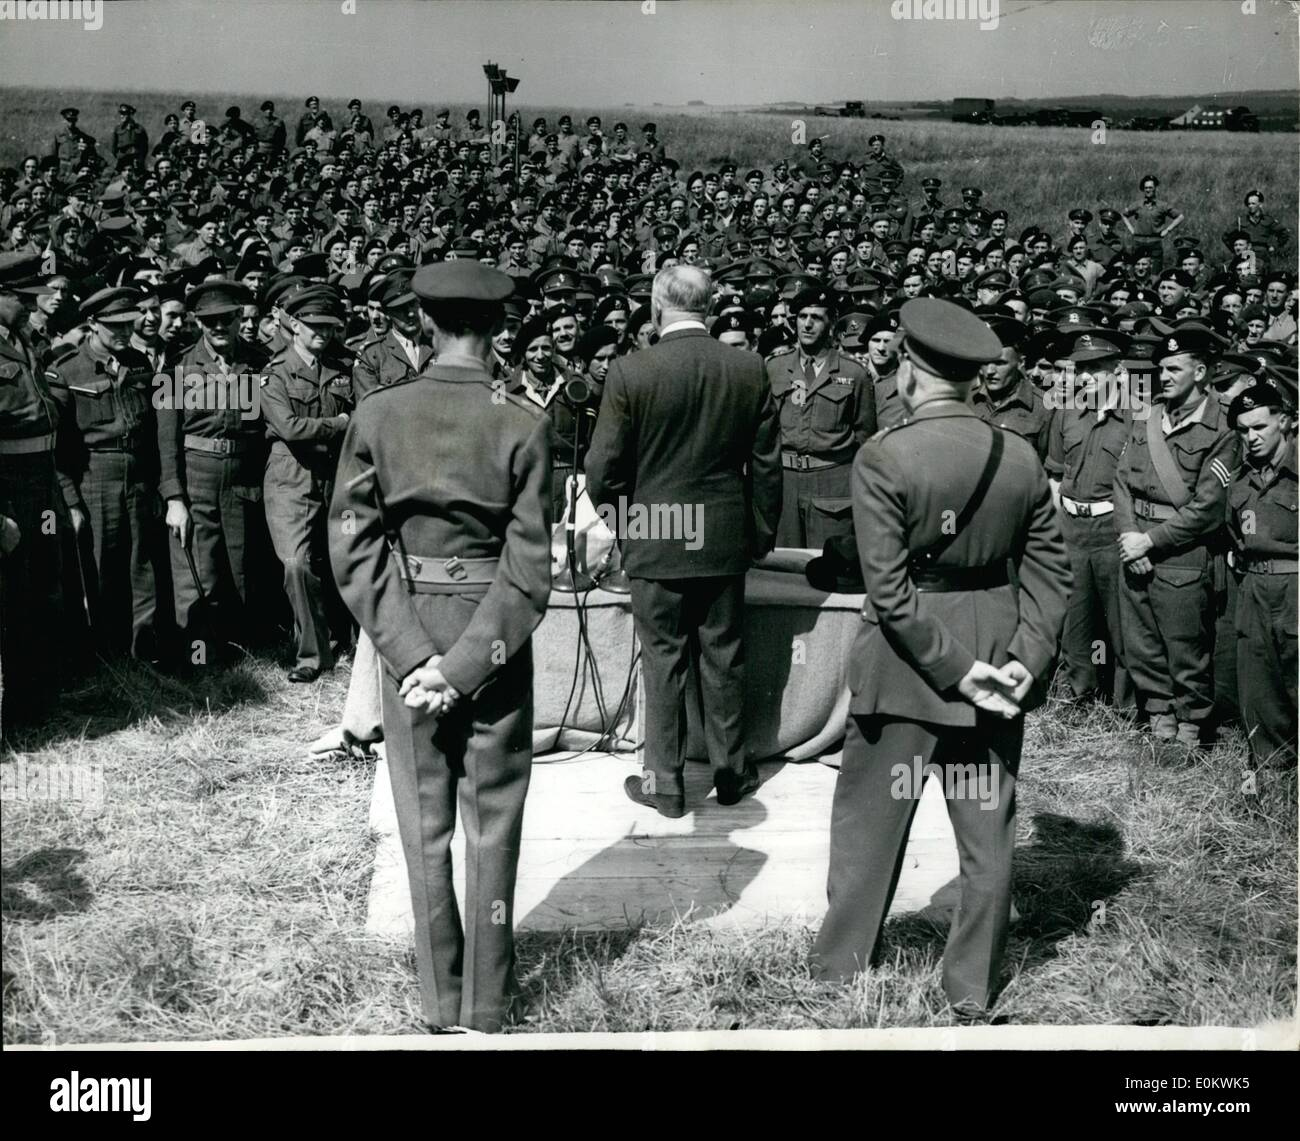 Jul. 07, 1950 - Minister of defence inspects the territorials. addresses the troops. Mr. Shinwell the minister of defence paid a visit to the 40 Th. Armour-ed division (TA) in camp at windmill Hill, tidworth, Hants this afternoon. photo shows As seen from behinds Mr. Shiewell address the troops during his visit to Salisbury this afternoon. - Stock Image